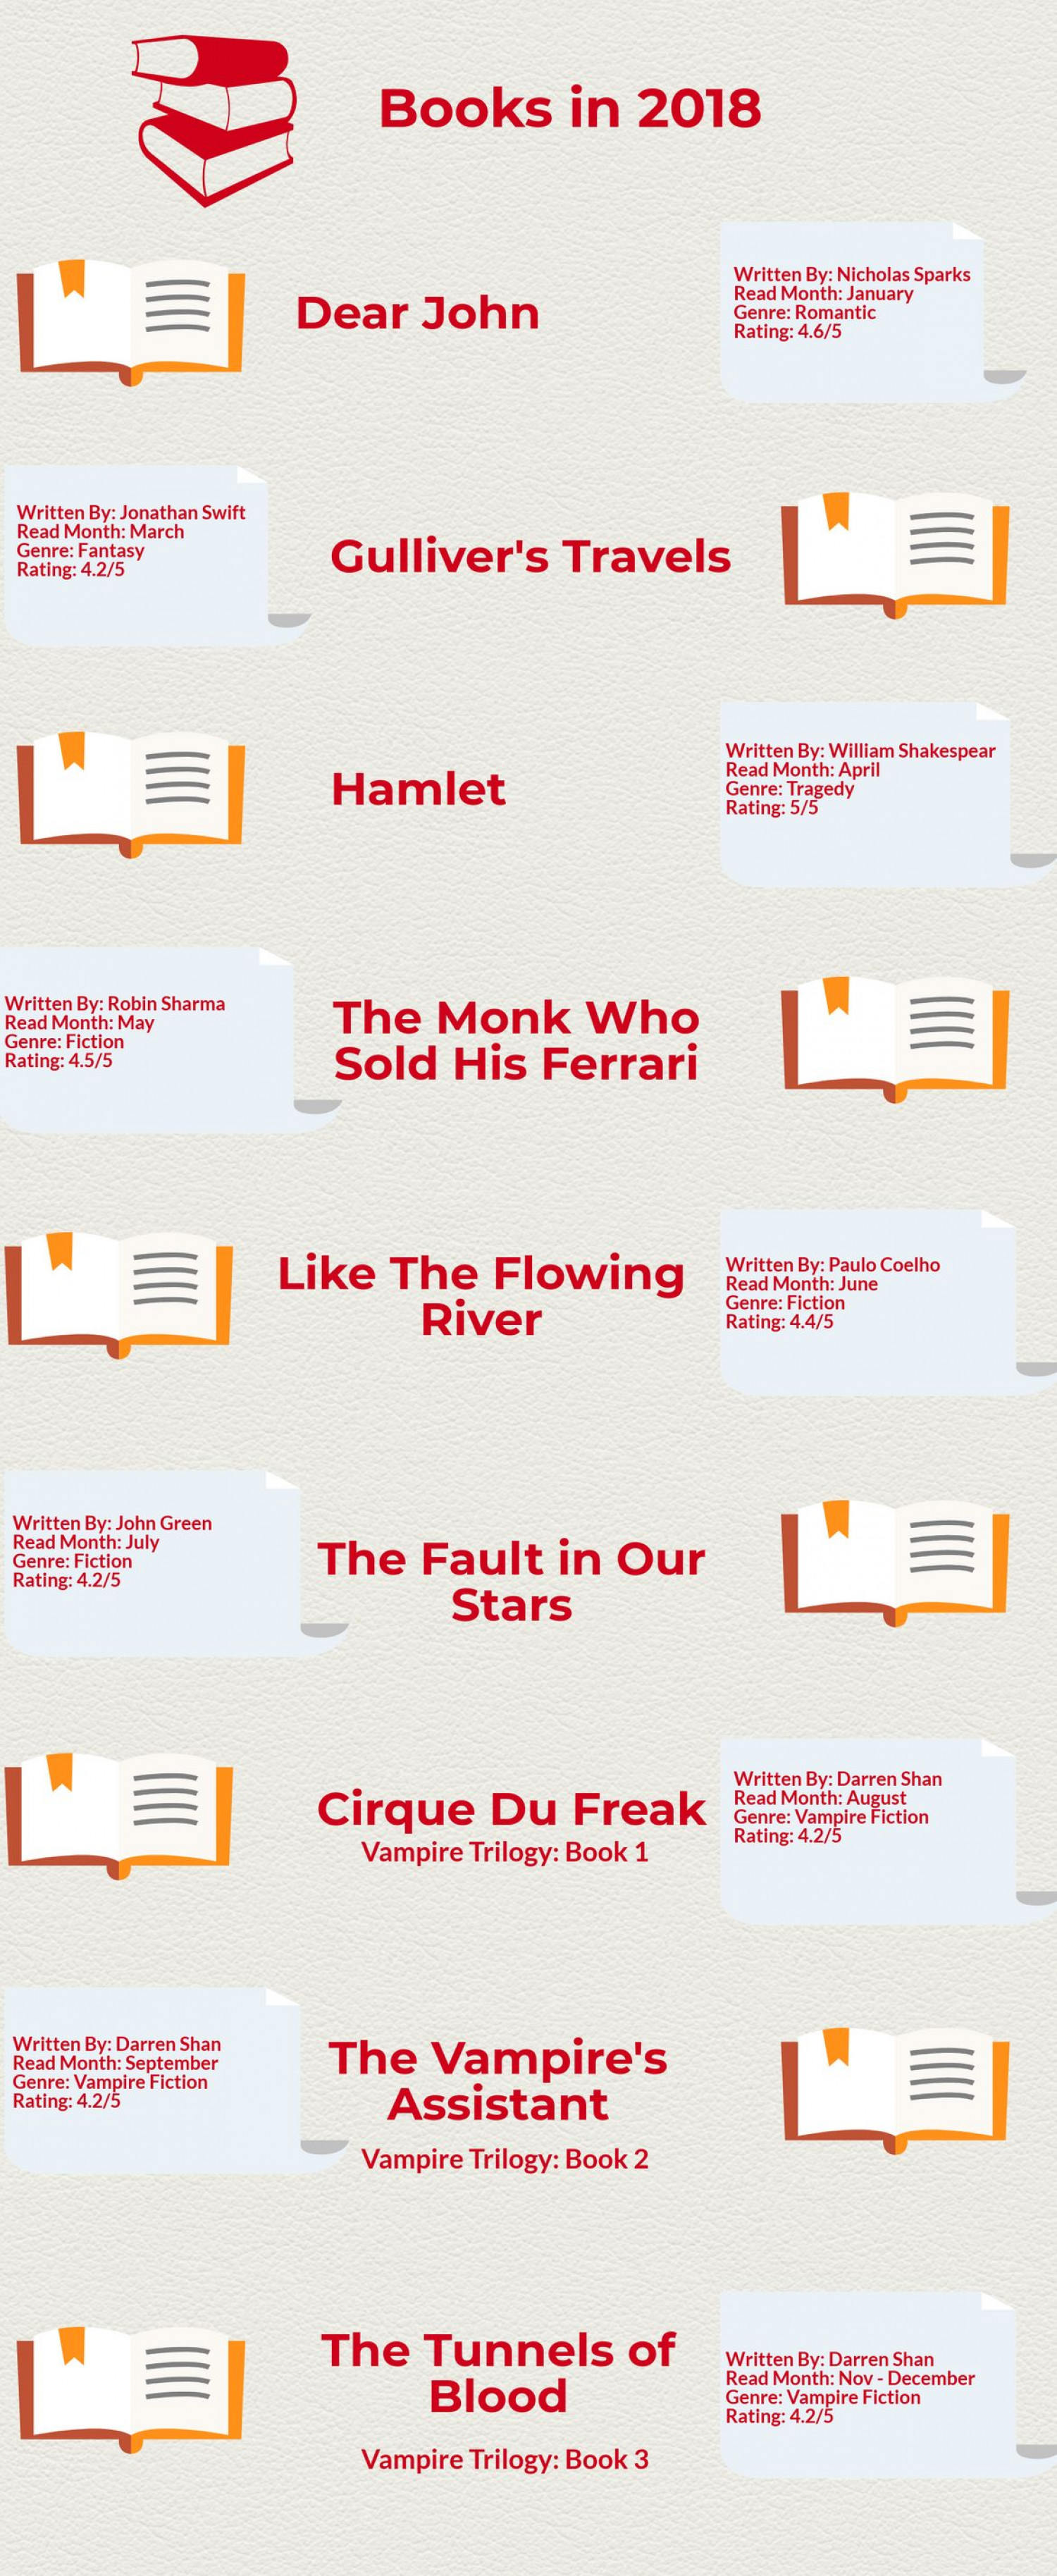 Books in 2018 Infographic